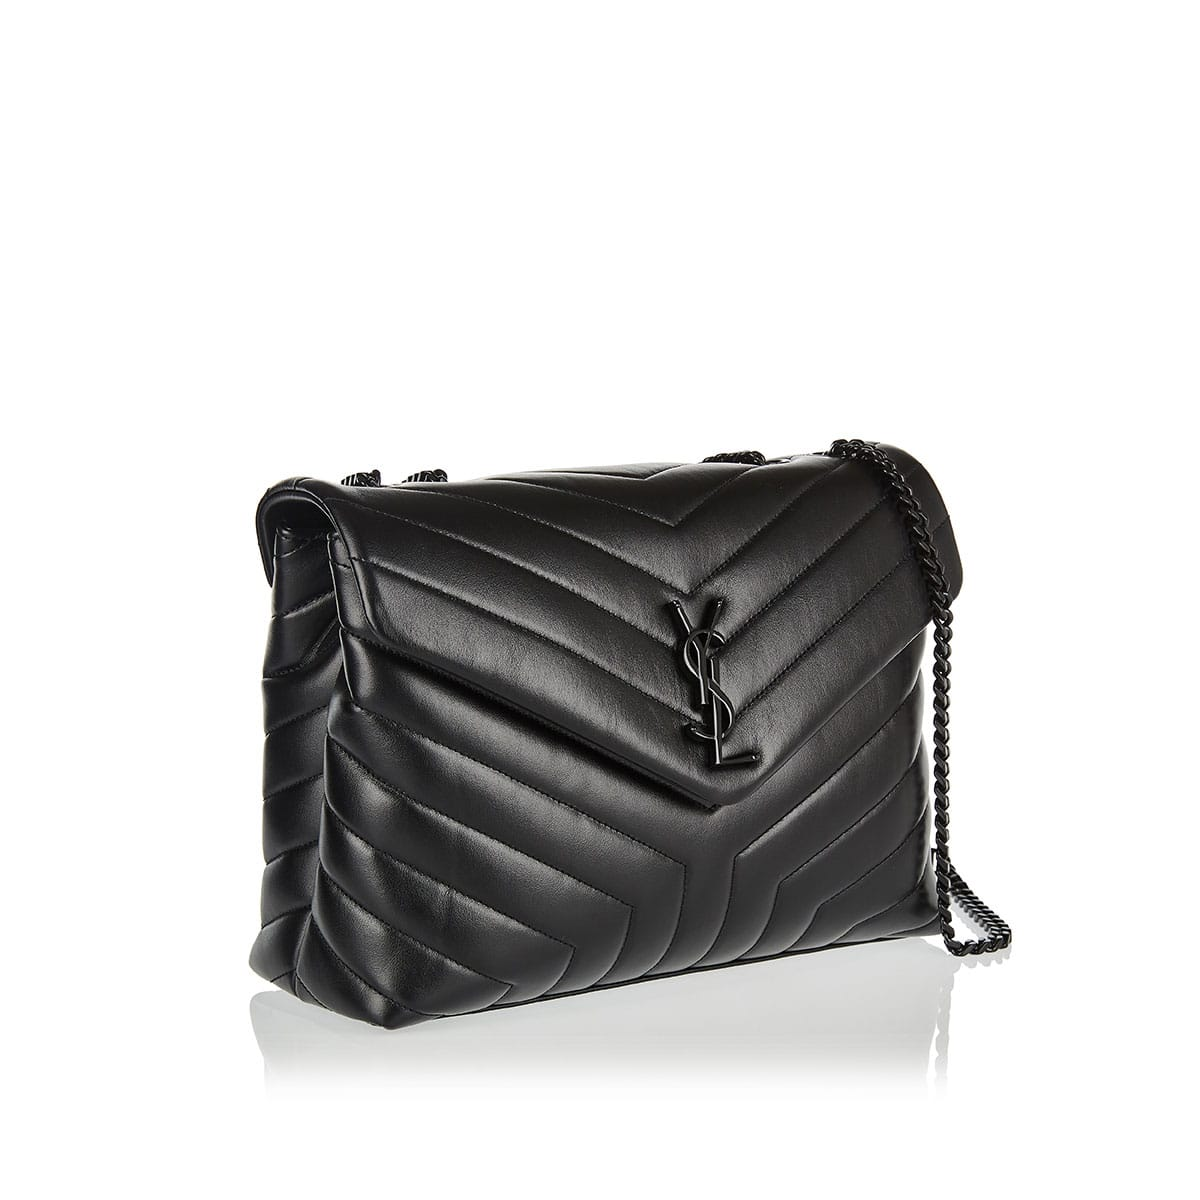 Medium Loulou matelassé leather bag